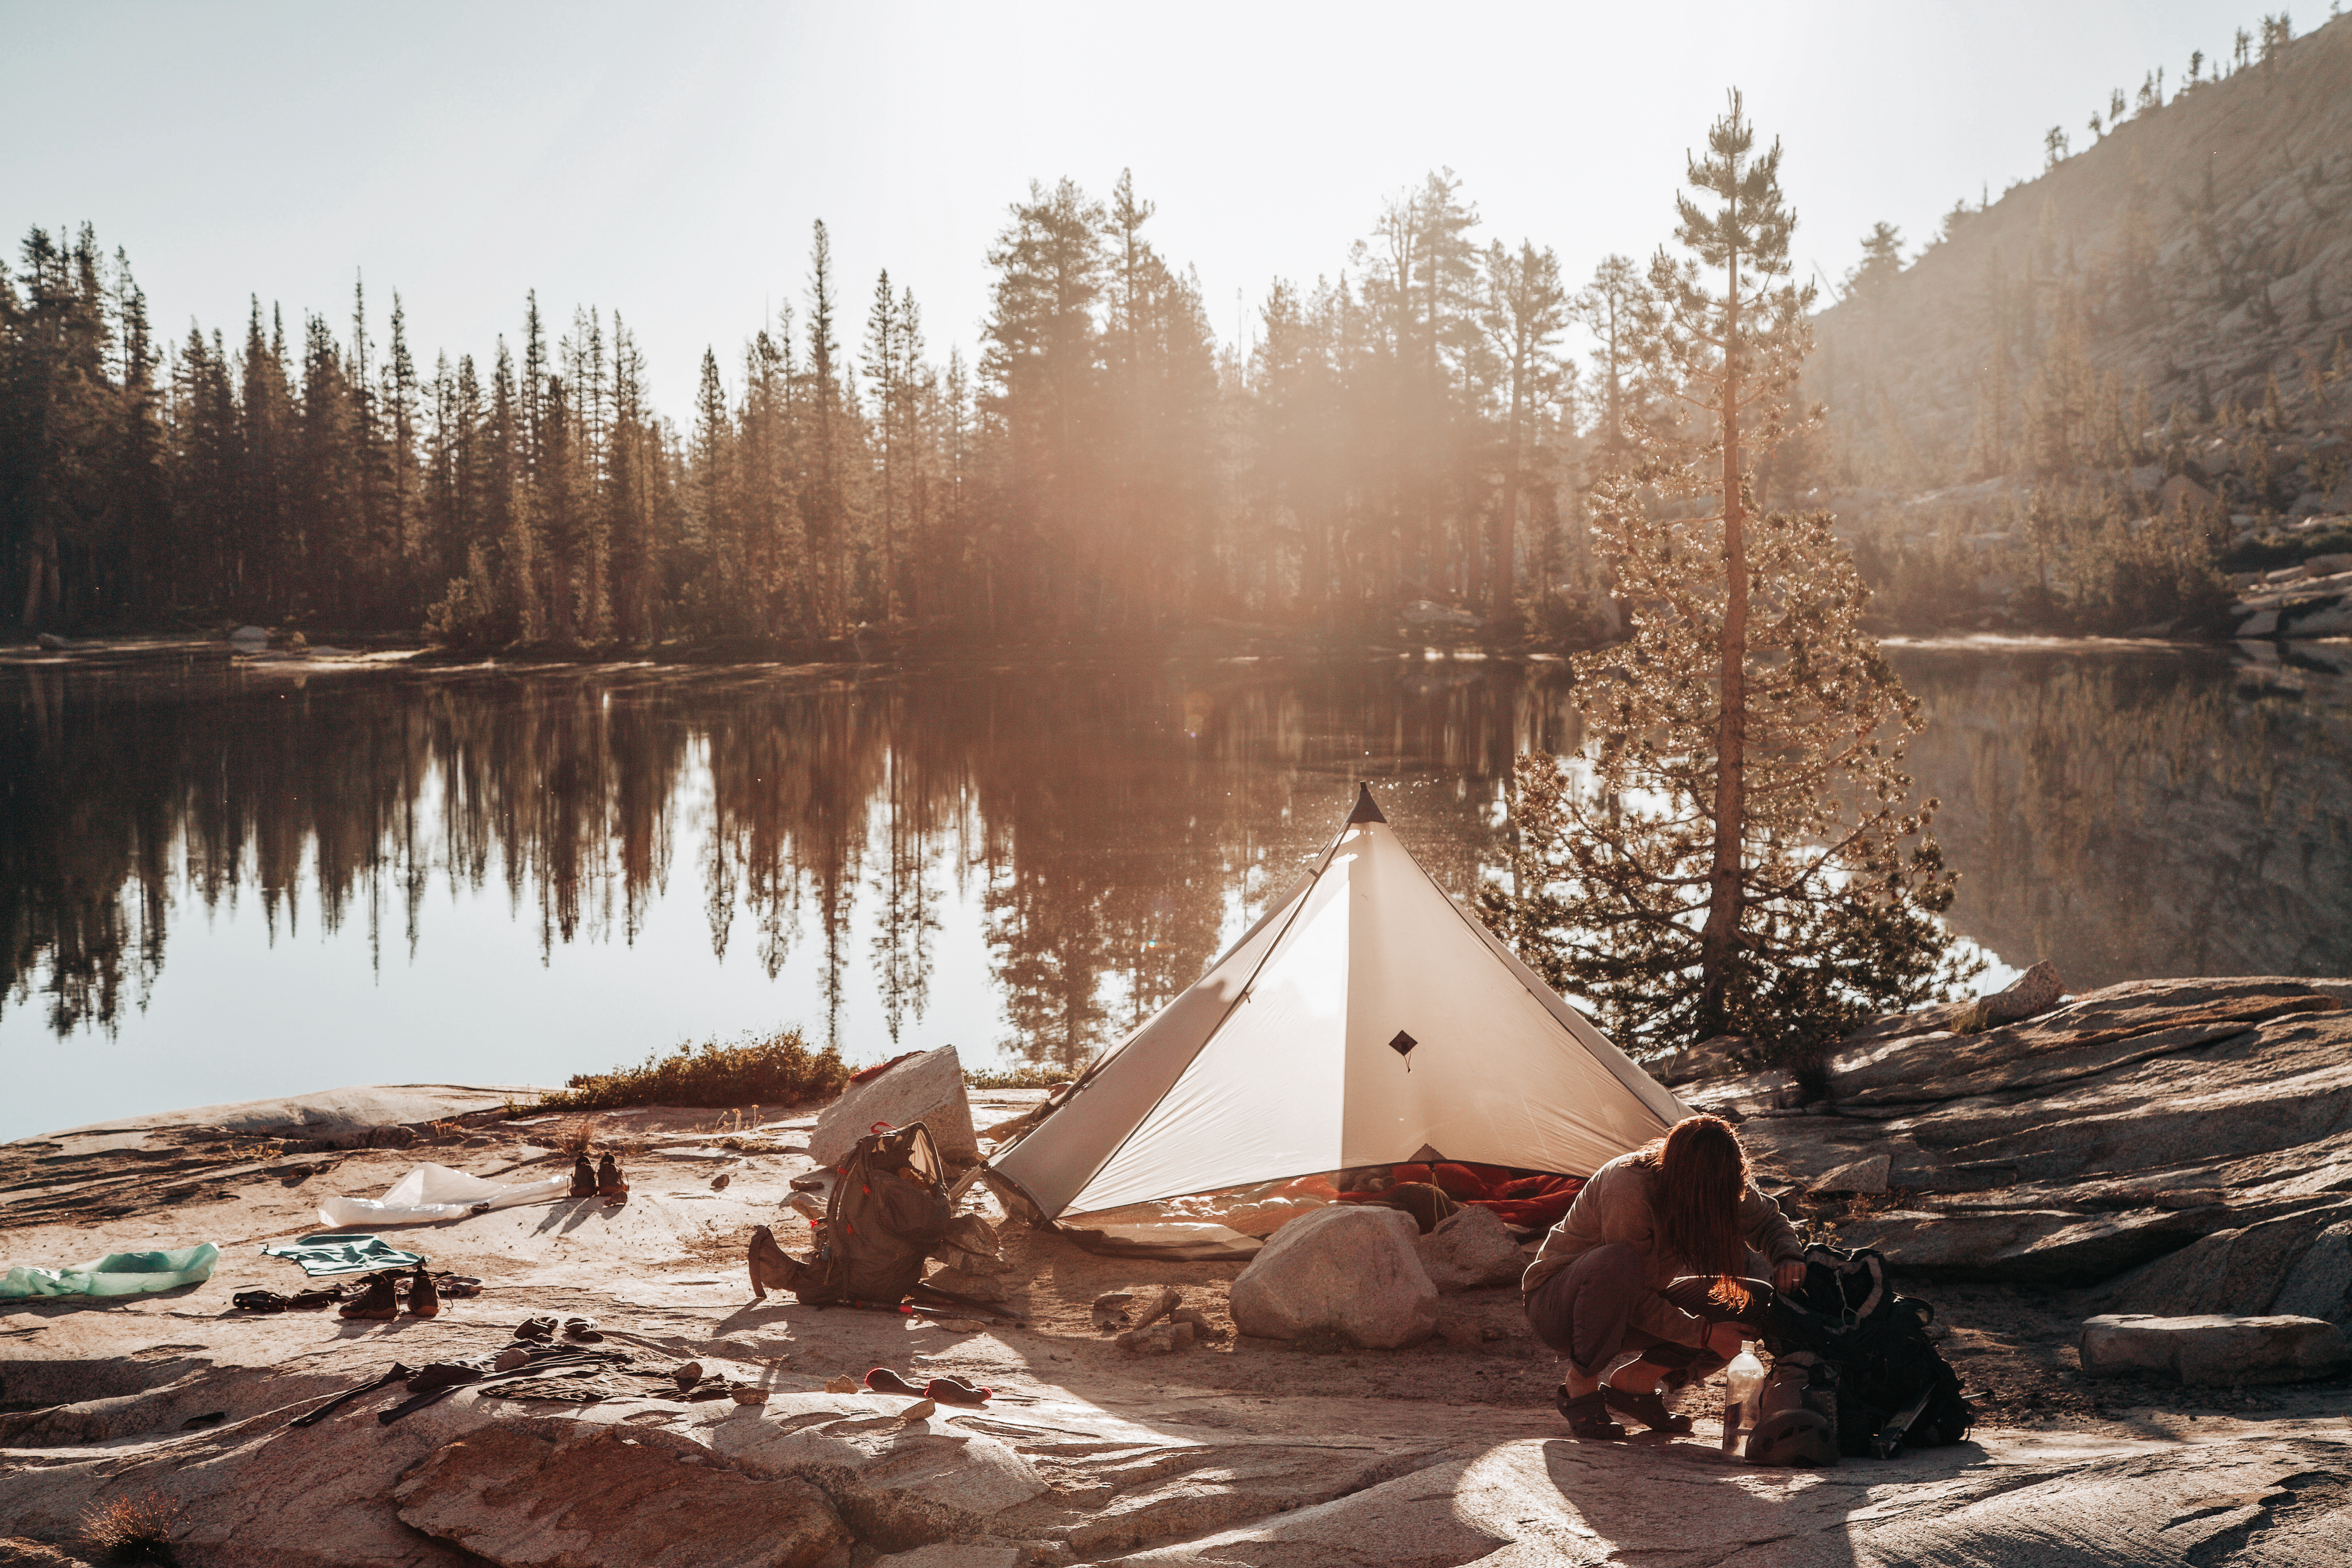 Tent by an alpine lake in Yosemite Wilderness